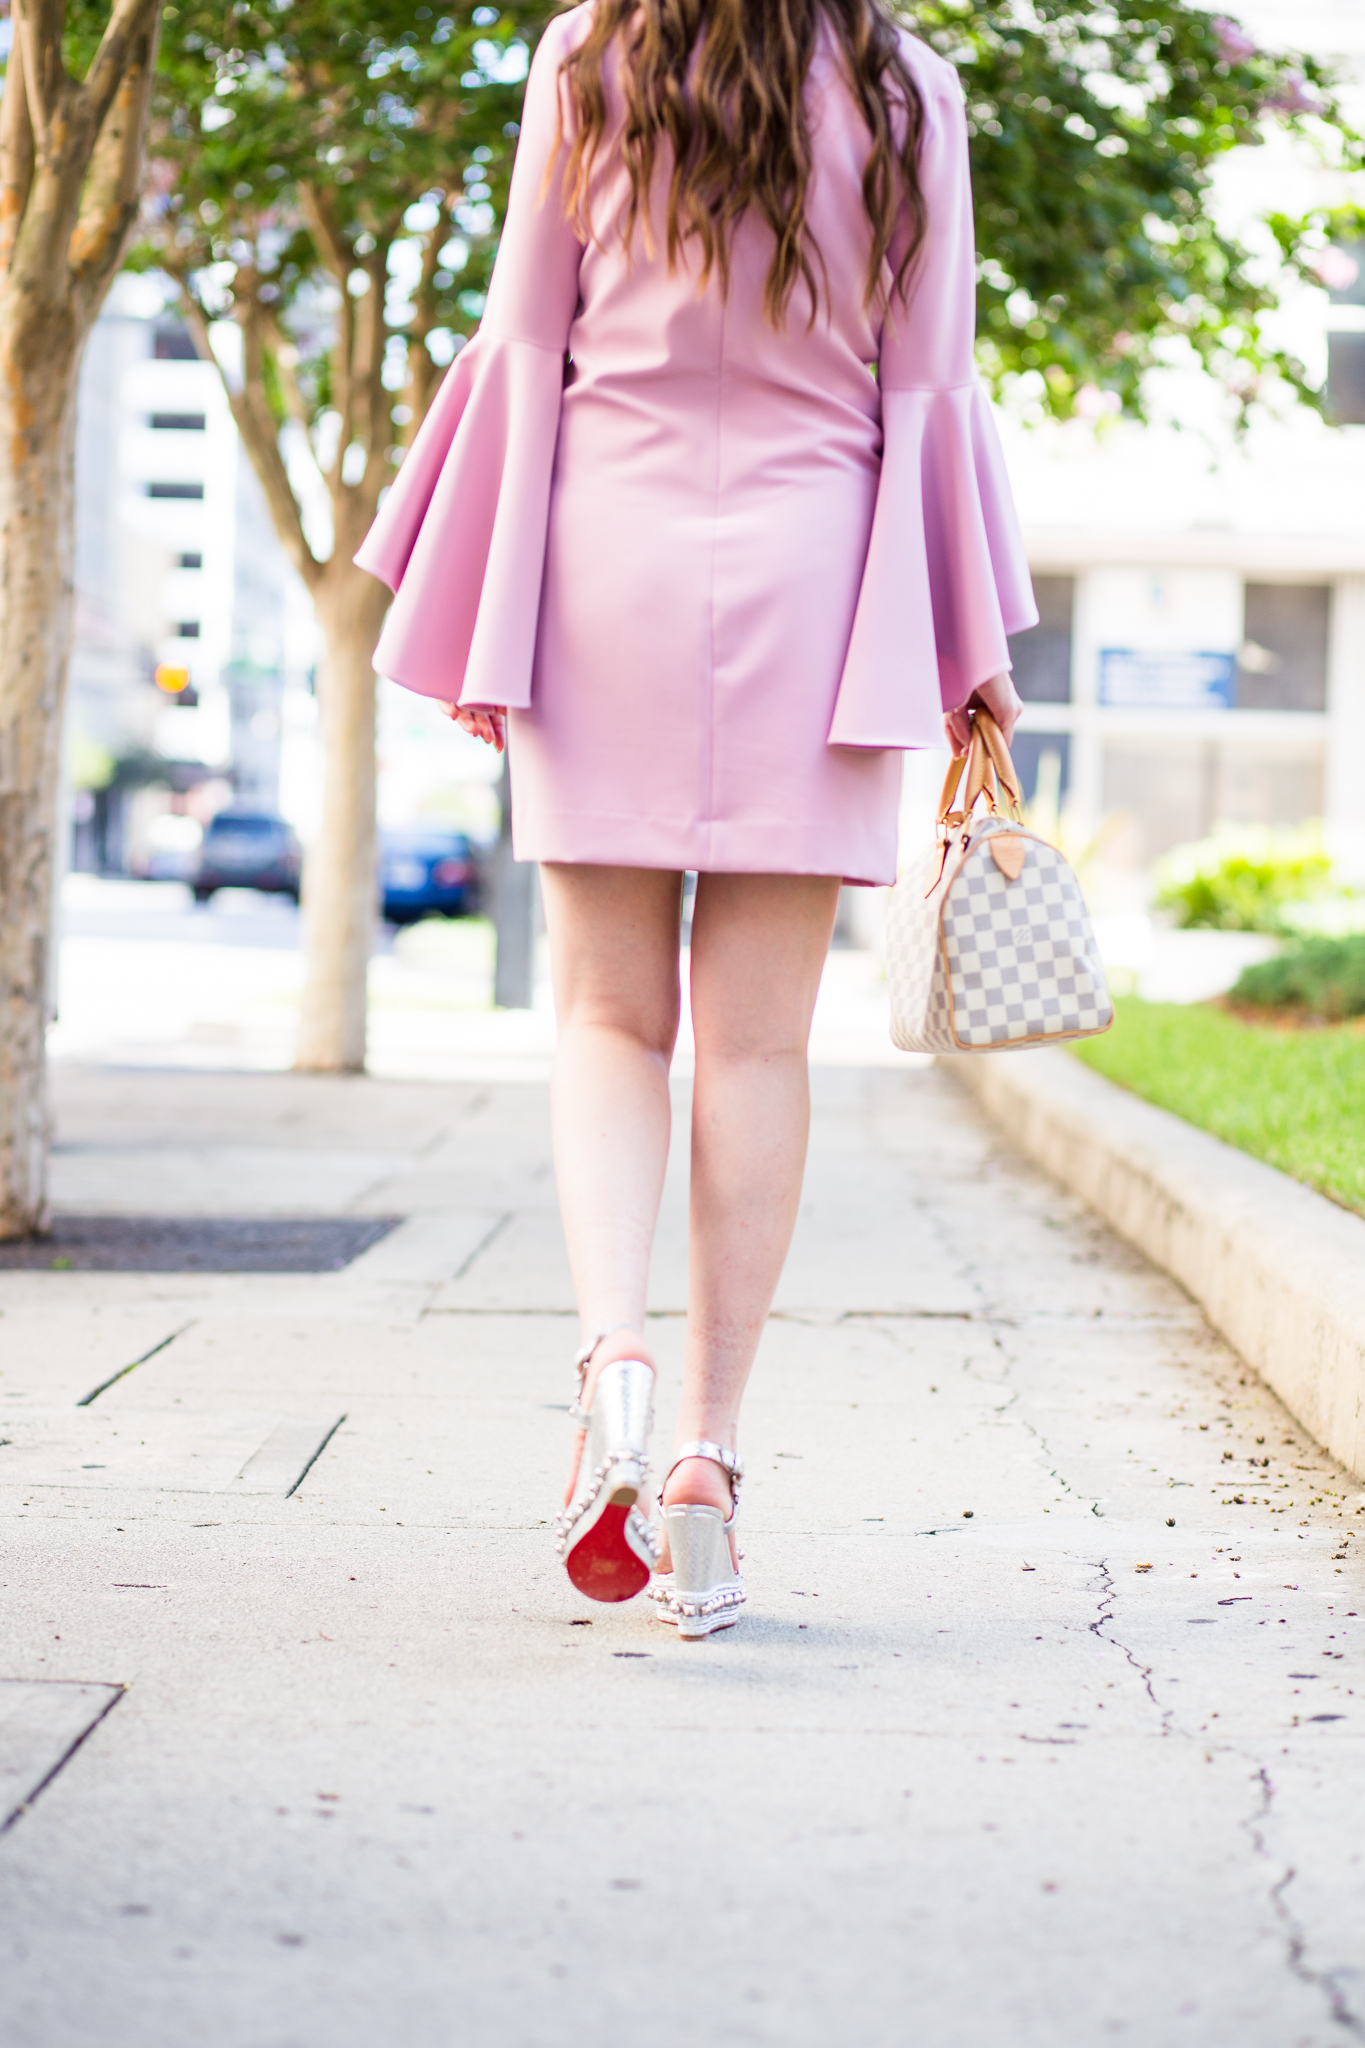 RUFFLE ME PINK WITH BELL-SLEEVES AND STUDS, Milly dress, milly nicole bell-sleeve dress, christian louboutin wedges, christian louboutin cataclou, summer dress, pink dress, pink bell sleeve dress, silver wedges, louis vuitton speedy 25 azur